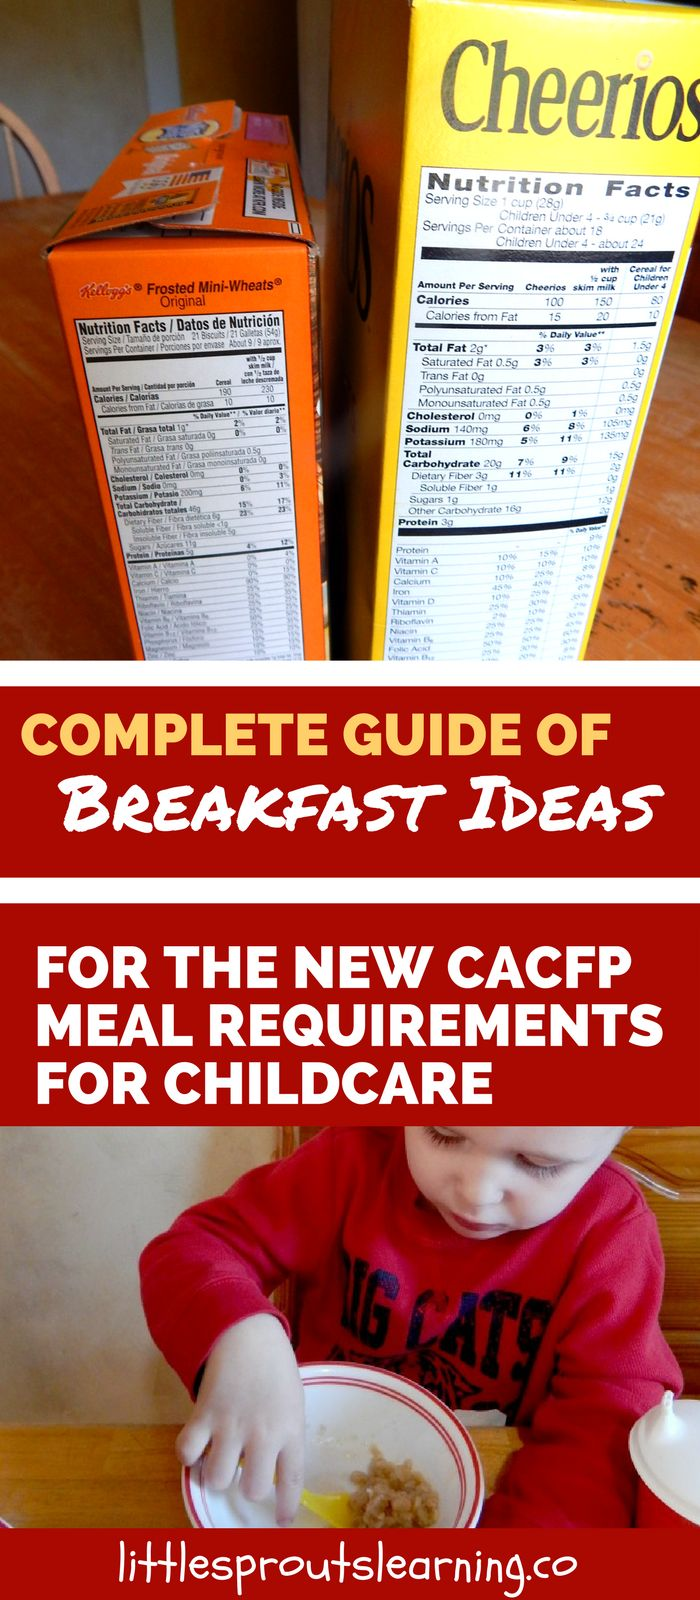 Do you need inspiration to come up with great breakfast ideas for your new childcare menu? Here are a few that might make meal planning easier.